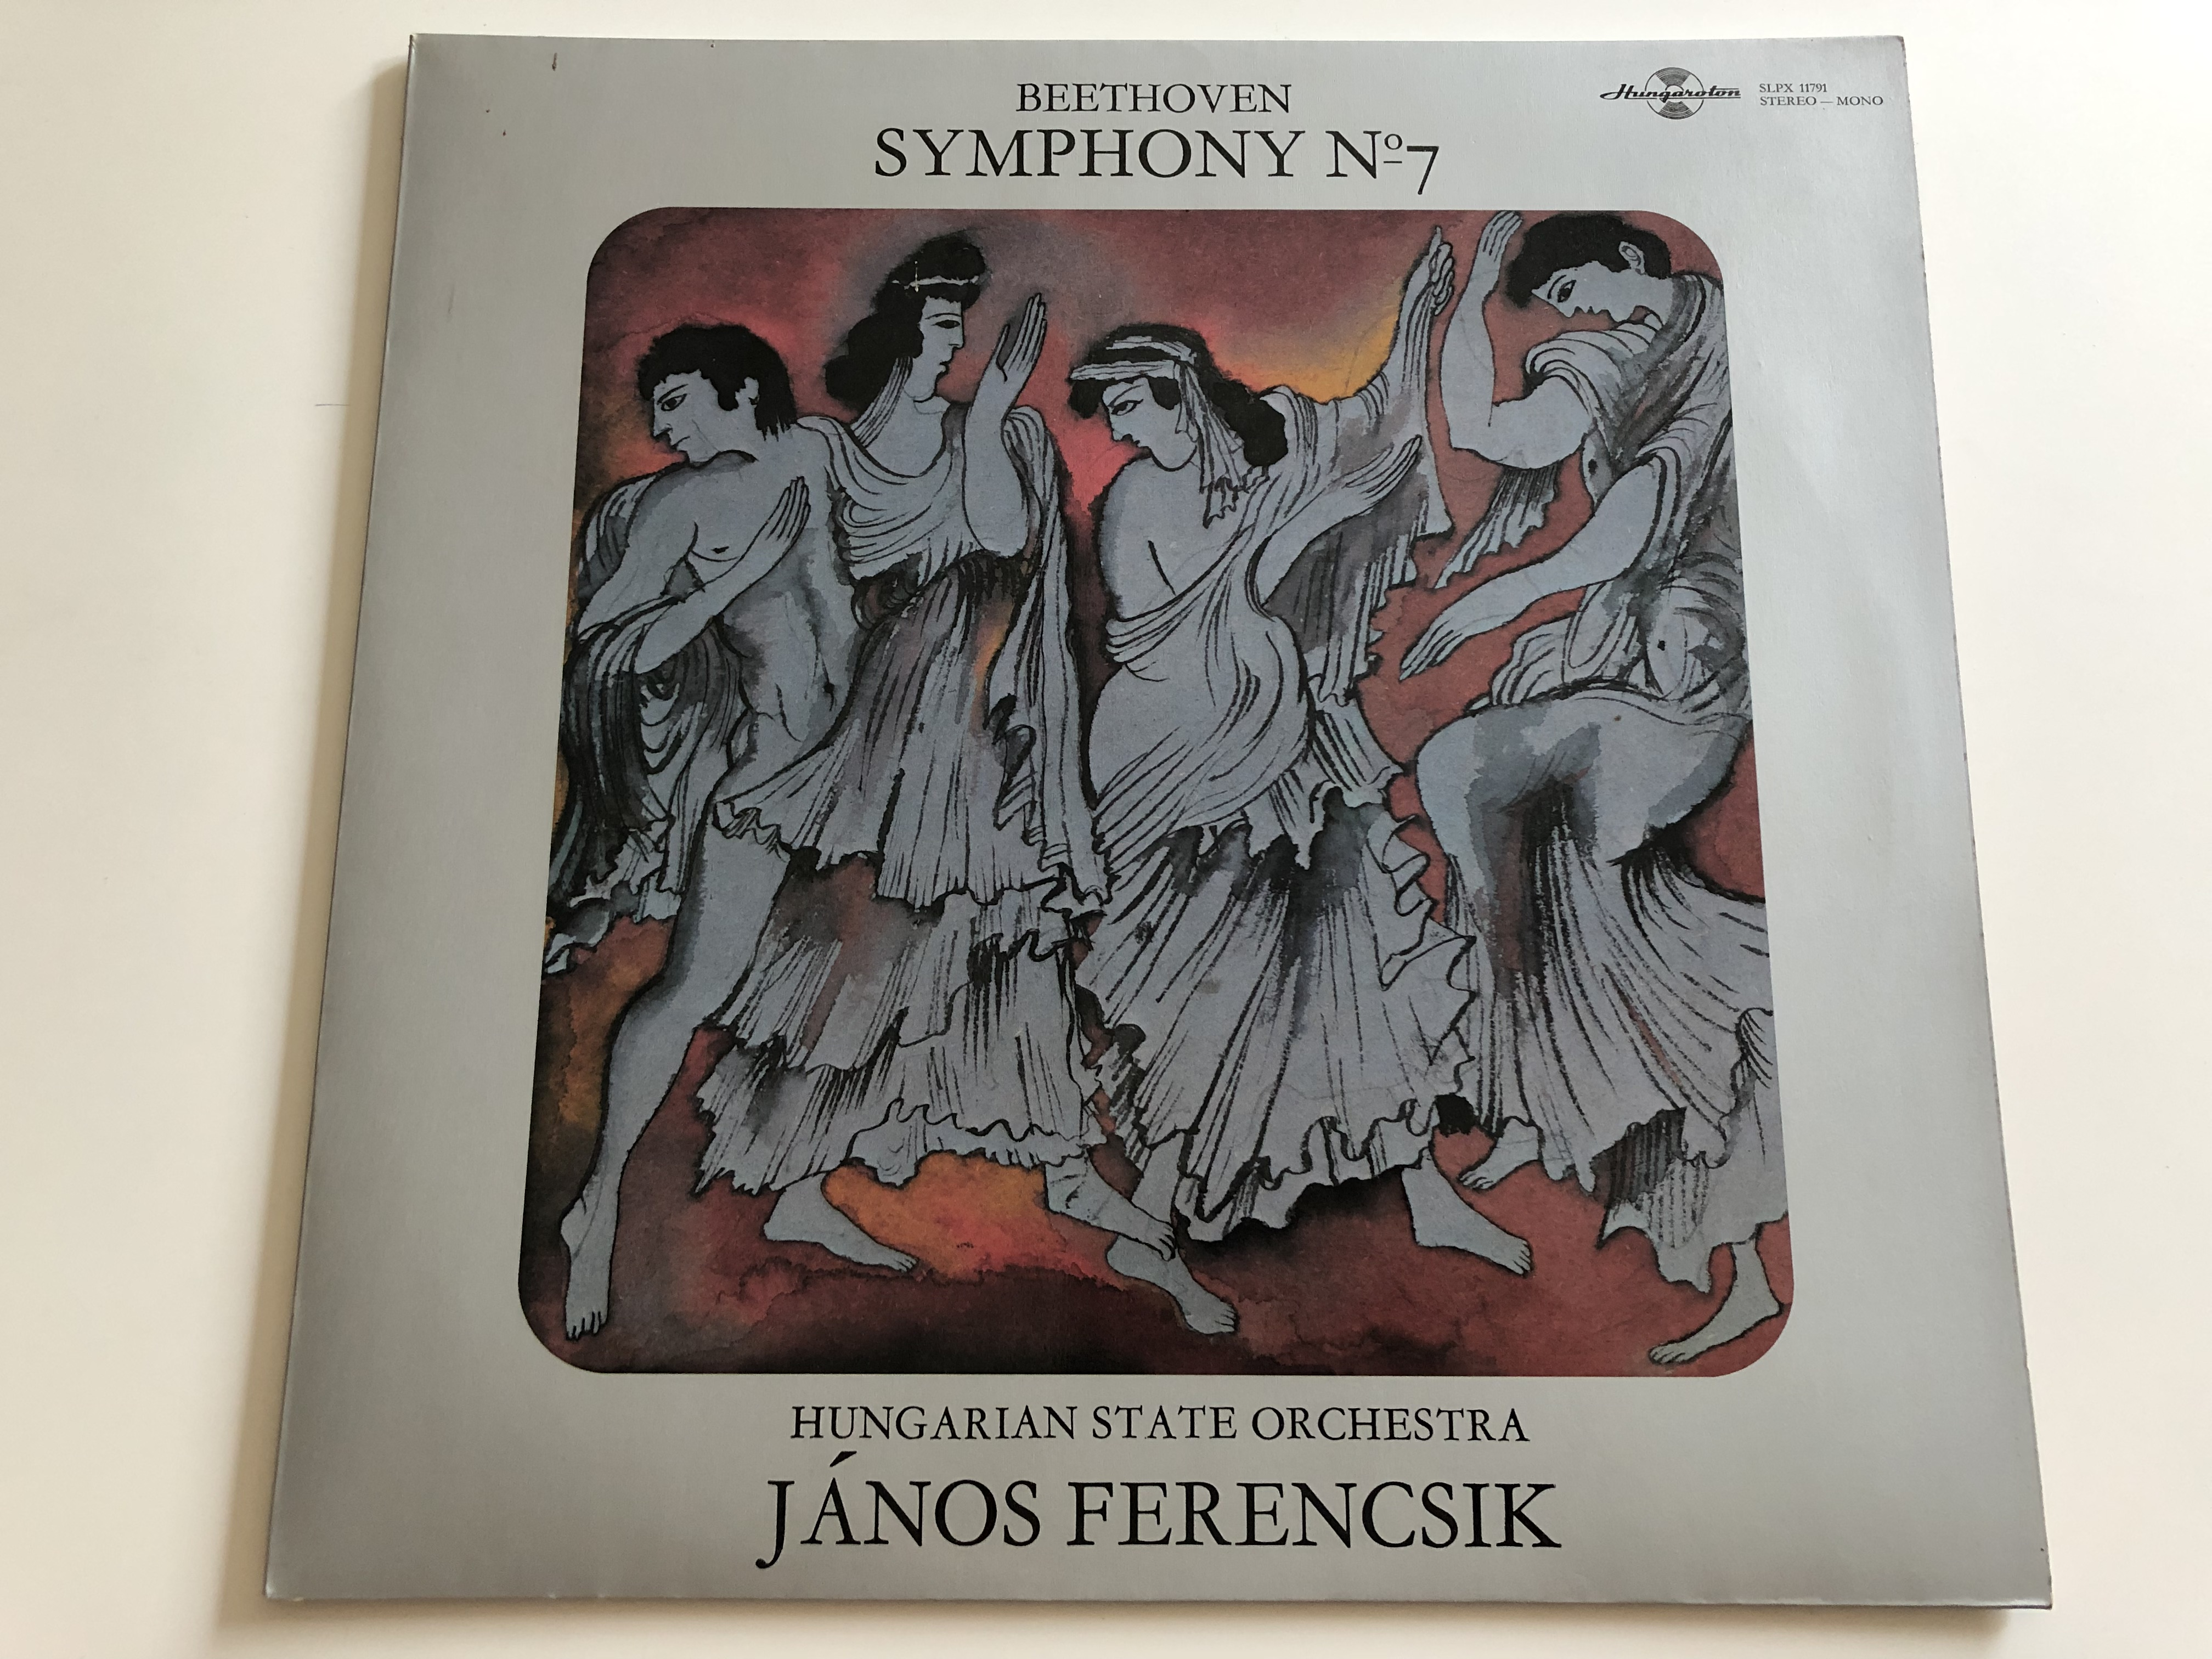 beethoven-symphony-7-hungarian-state-orchestra-conducted-j-nos-ferencsik-hungaroton-lp-stereo-mono-slpx-11791-1-.jpg